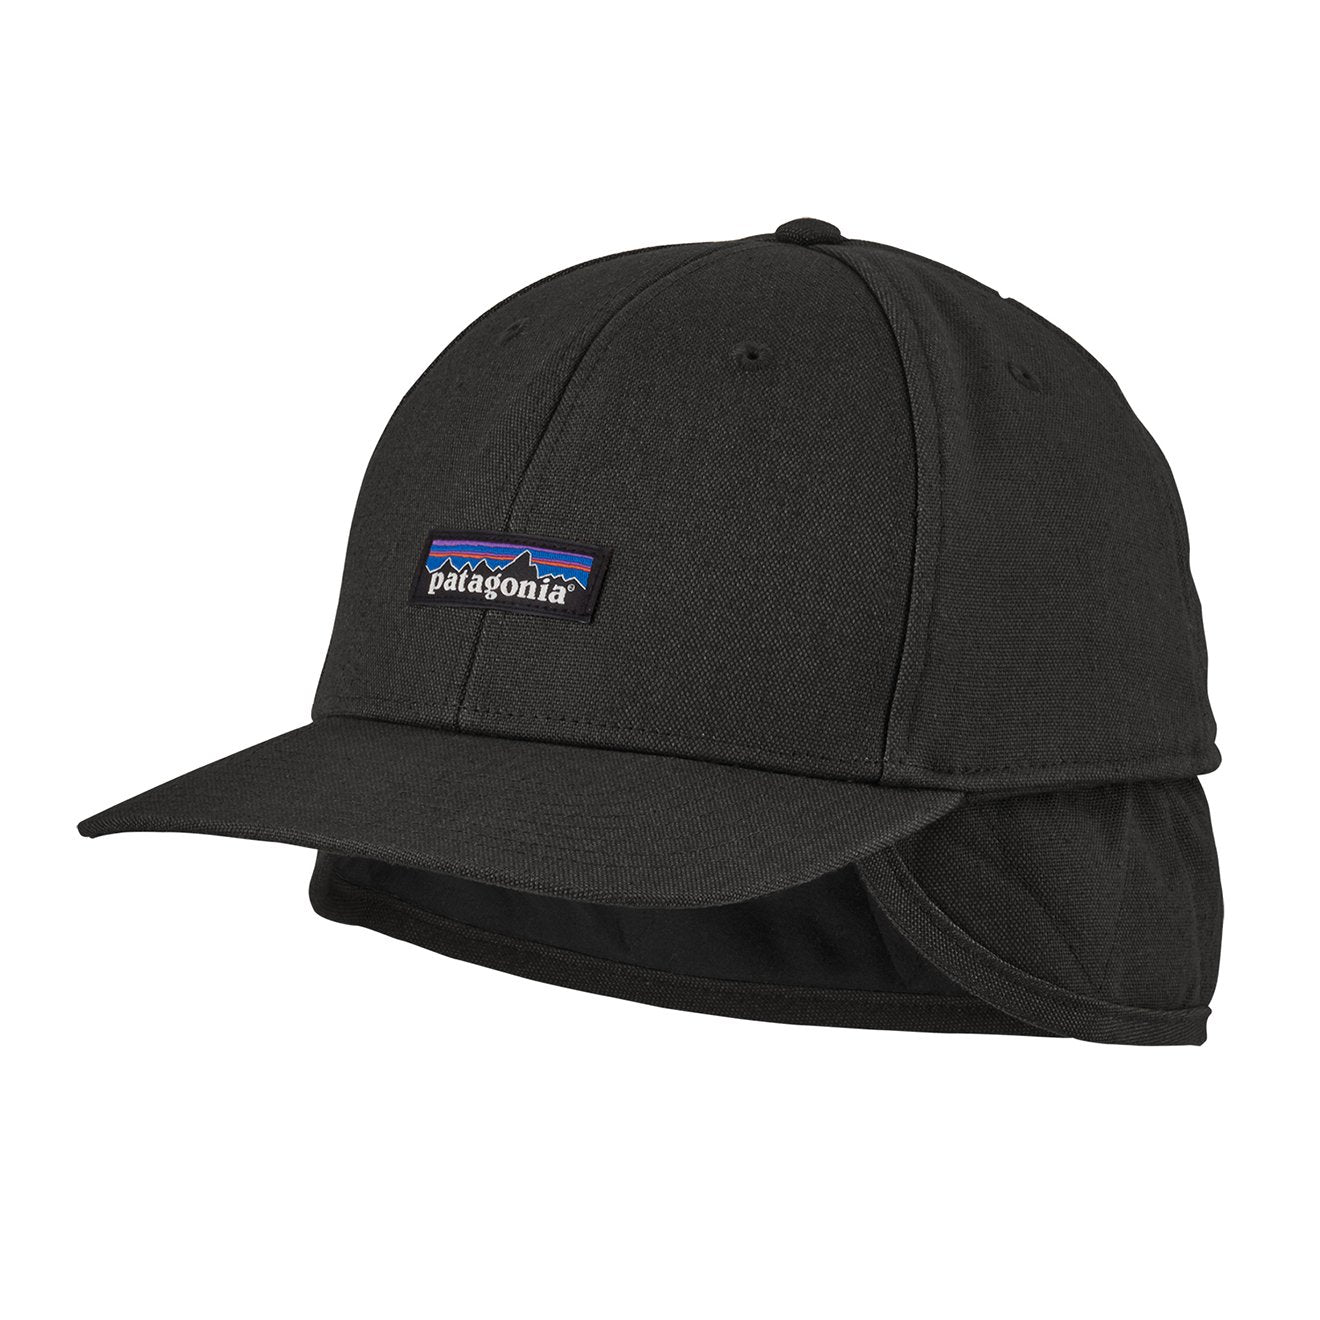 Patagonia Cotton Insulated Tin Shed Cap In Black For Men: Patagonia Insulated Tin Shed Cap Ink Black